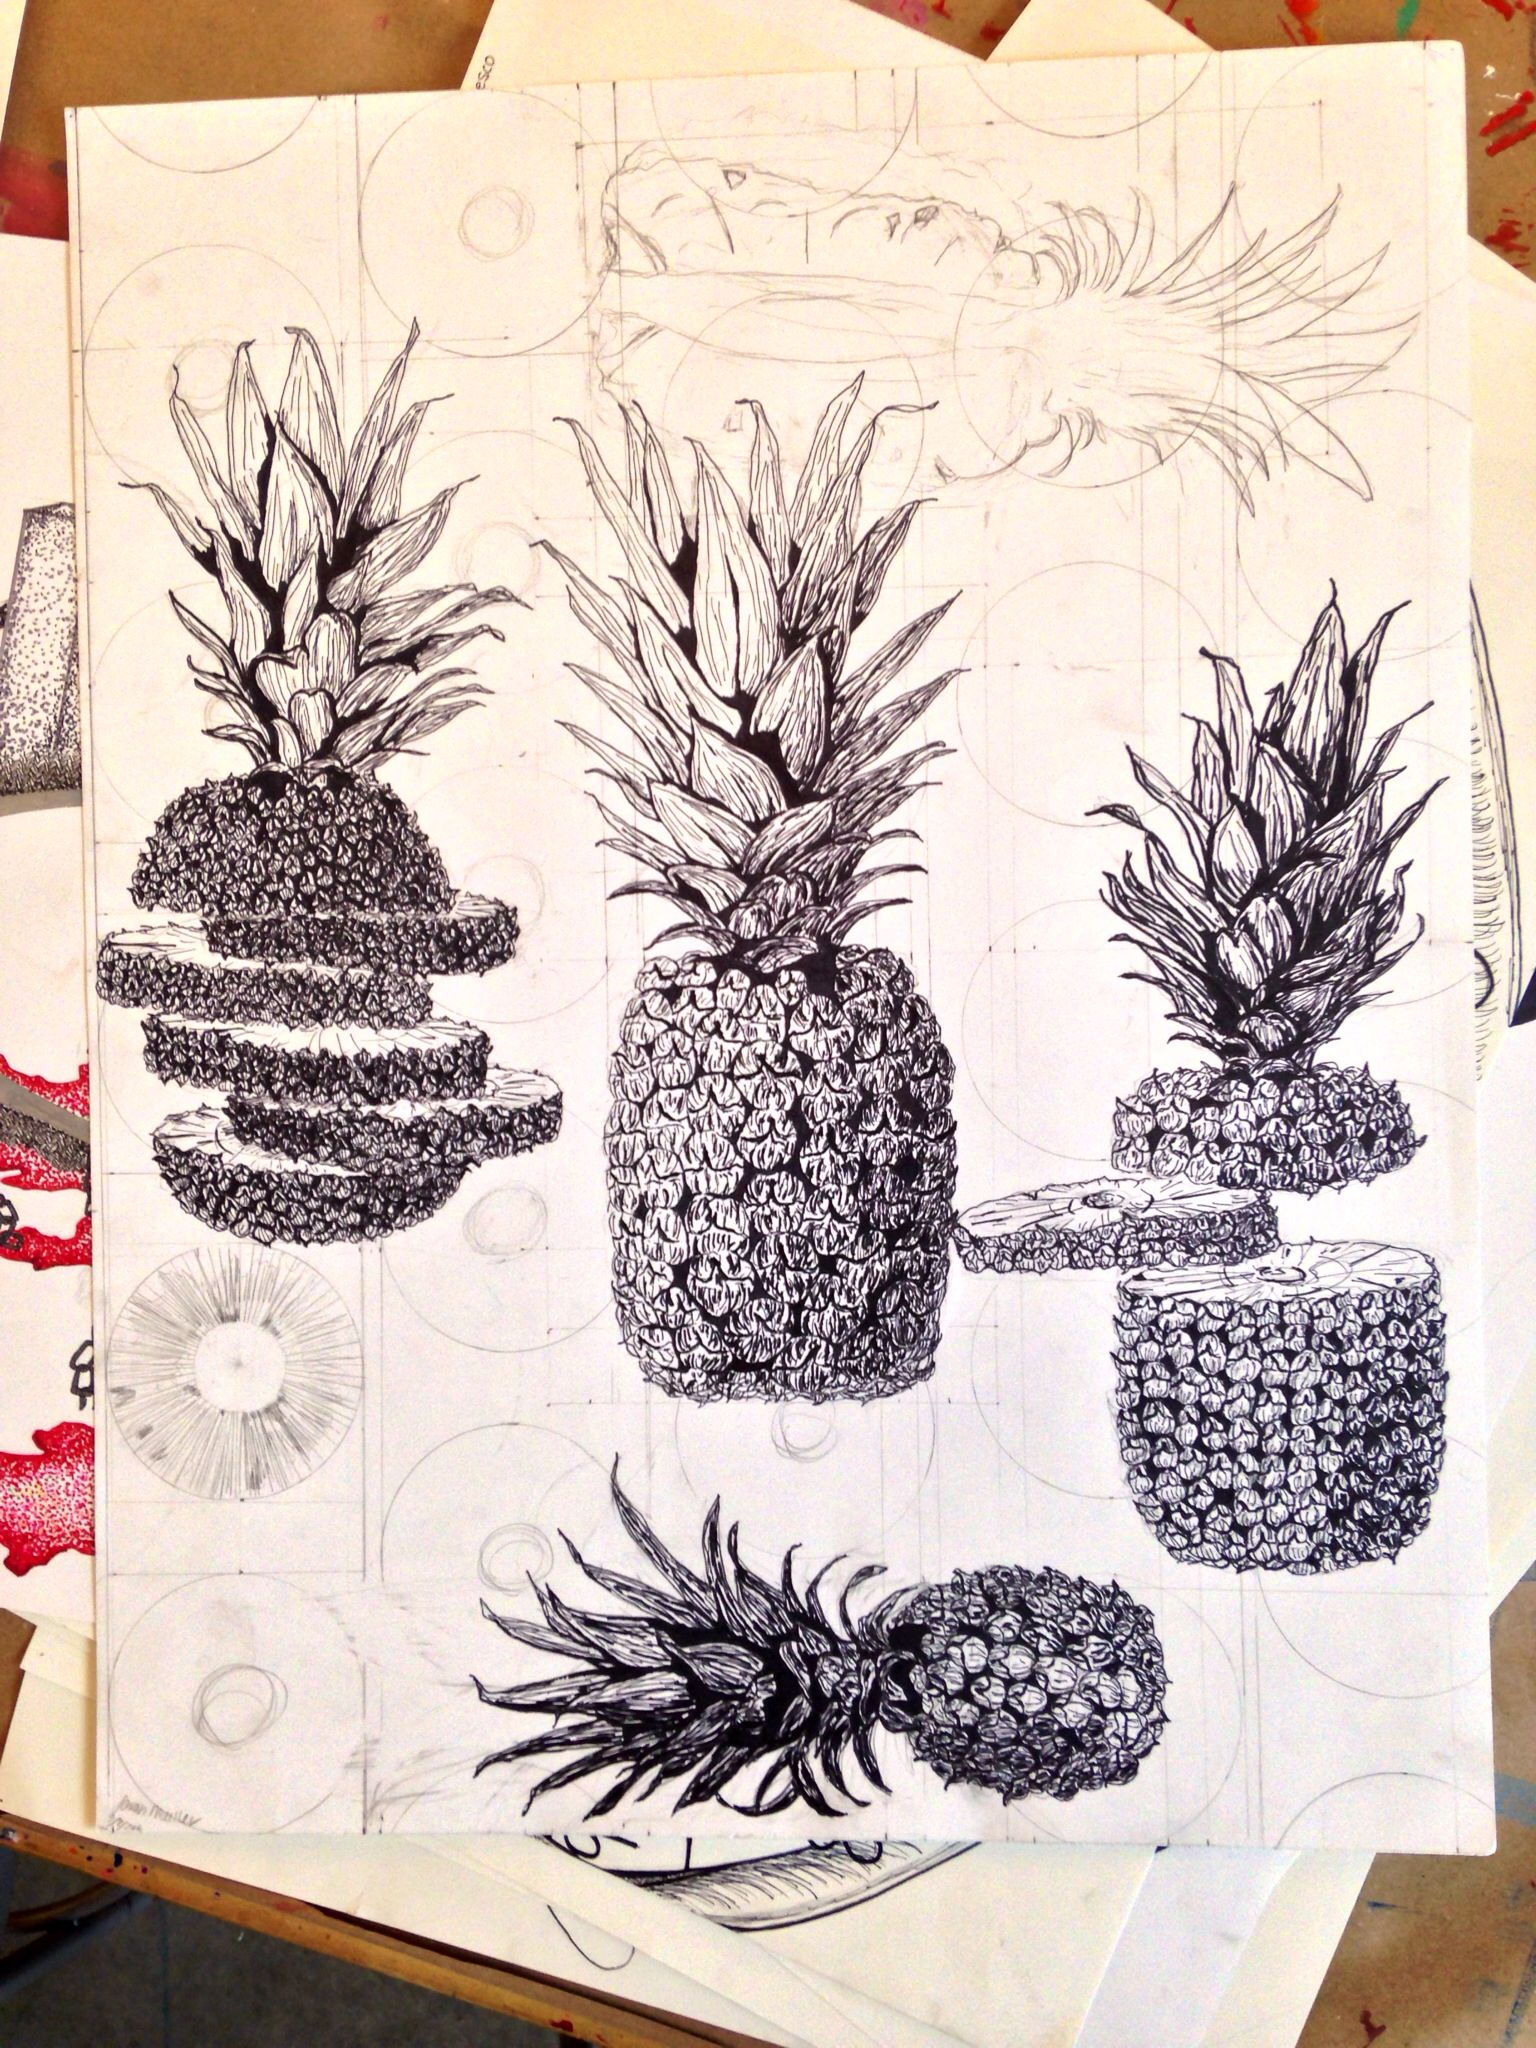 realistic pineapple drawing. my #pineapple #pineapples #negativespace #ink #pencil #drawing #linear # realistic pineapple drawing ,